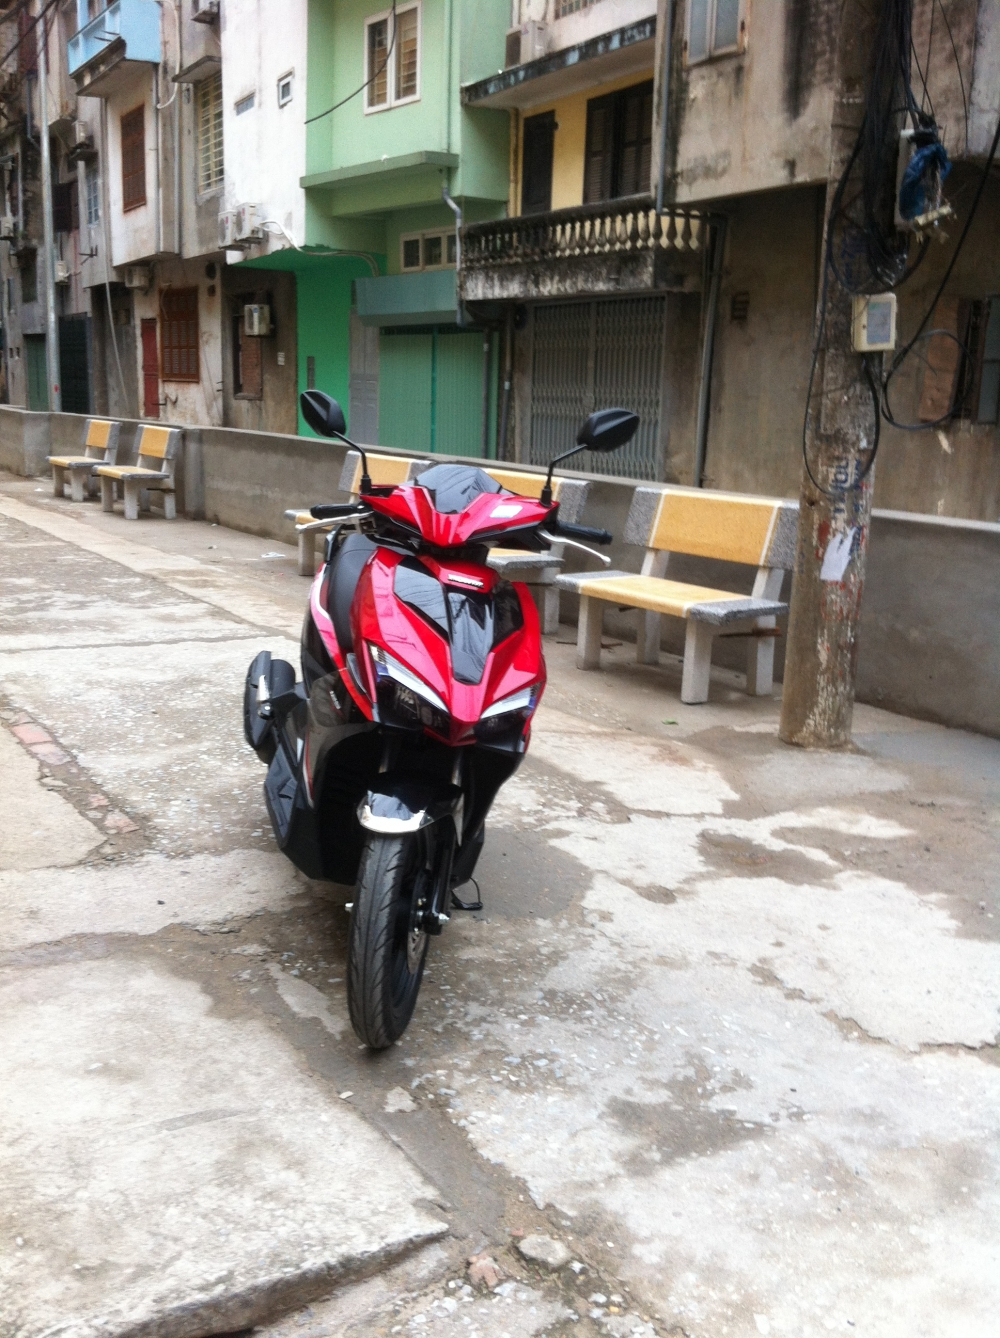 Air blade 216 bien ha noi